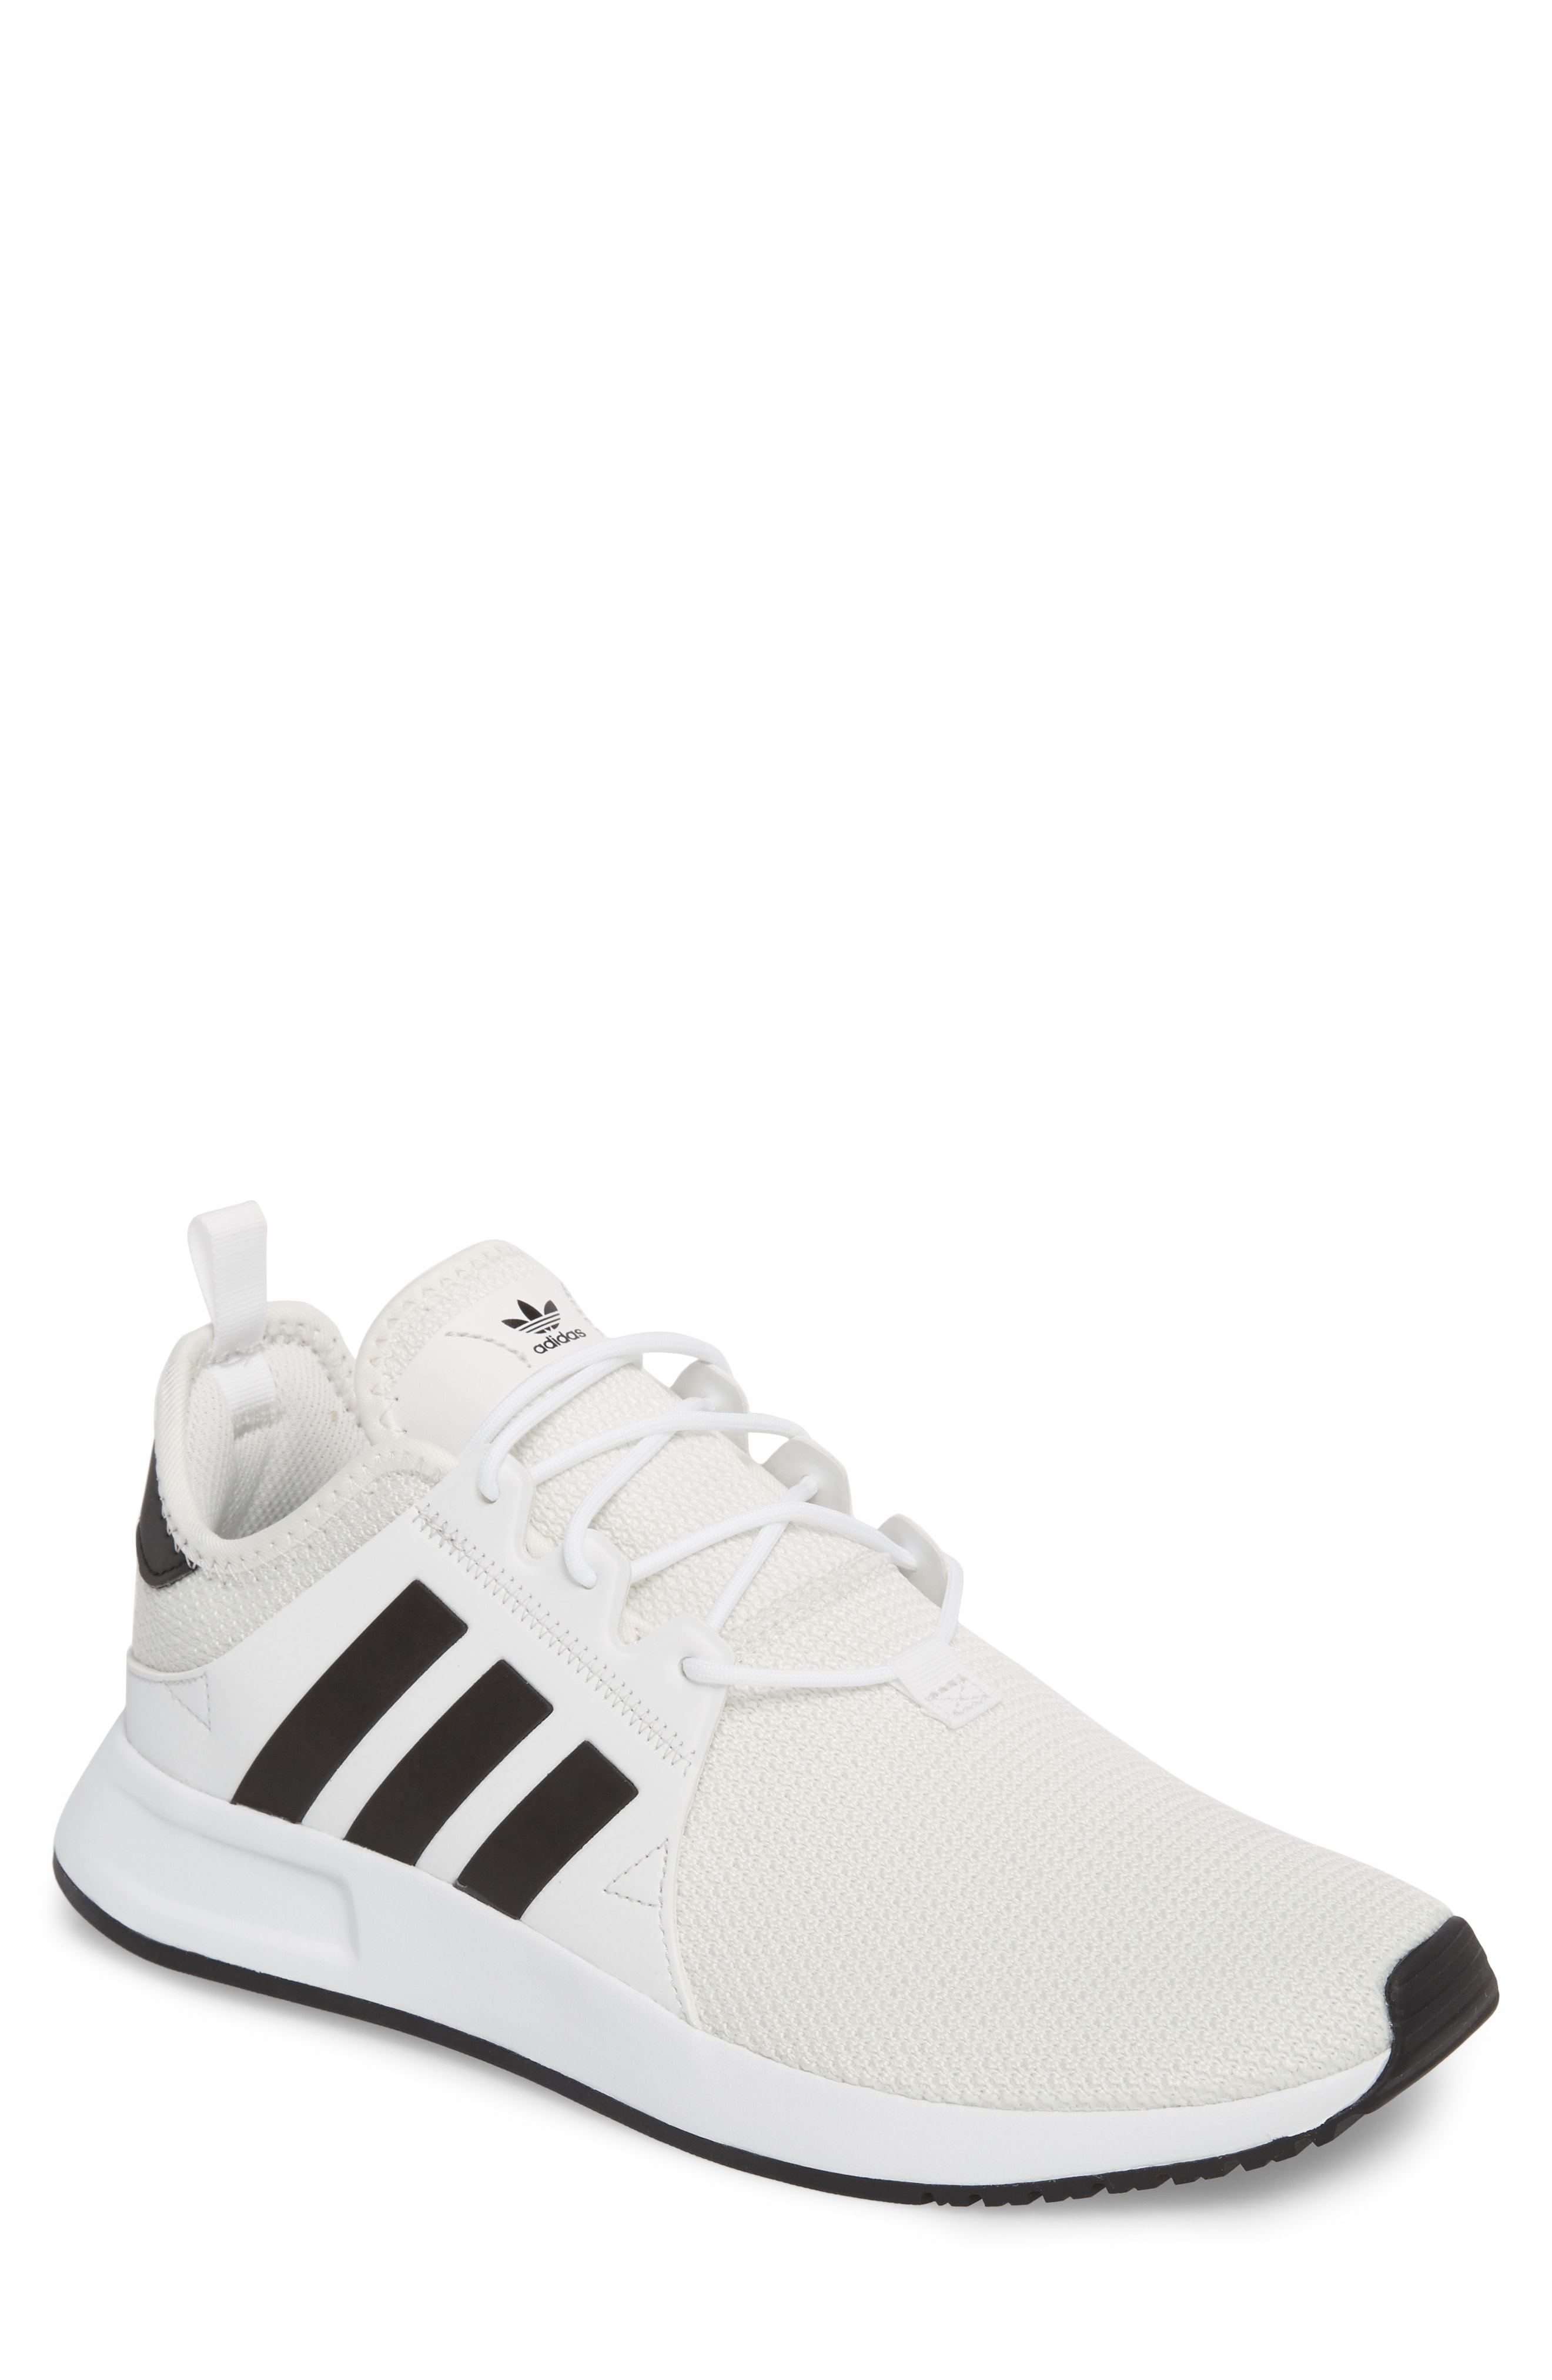 e347b9f5206b Adidas Originals Adidas Men s X Plr Casual Sneakers From Finish Line In  White